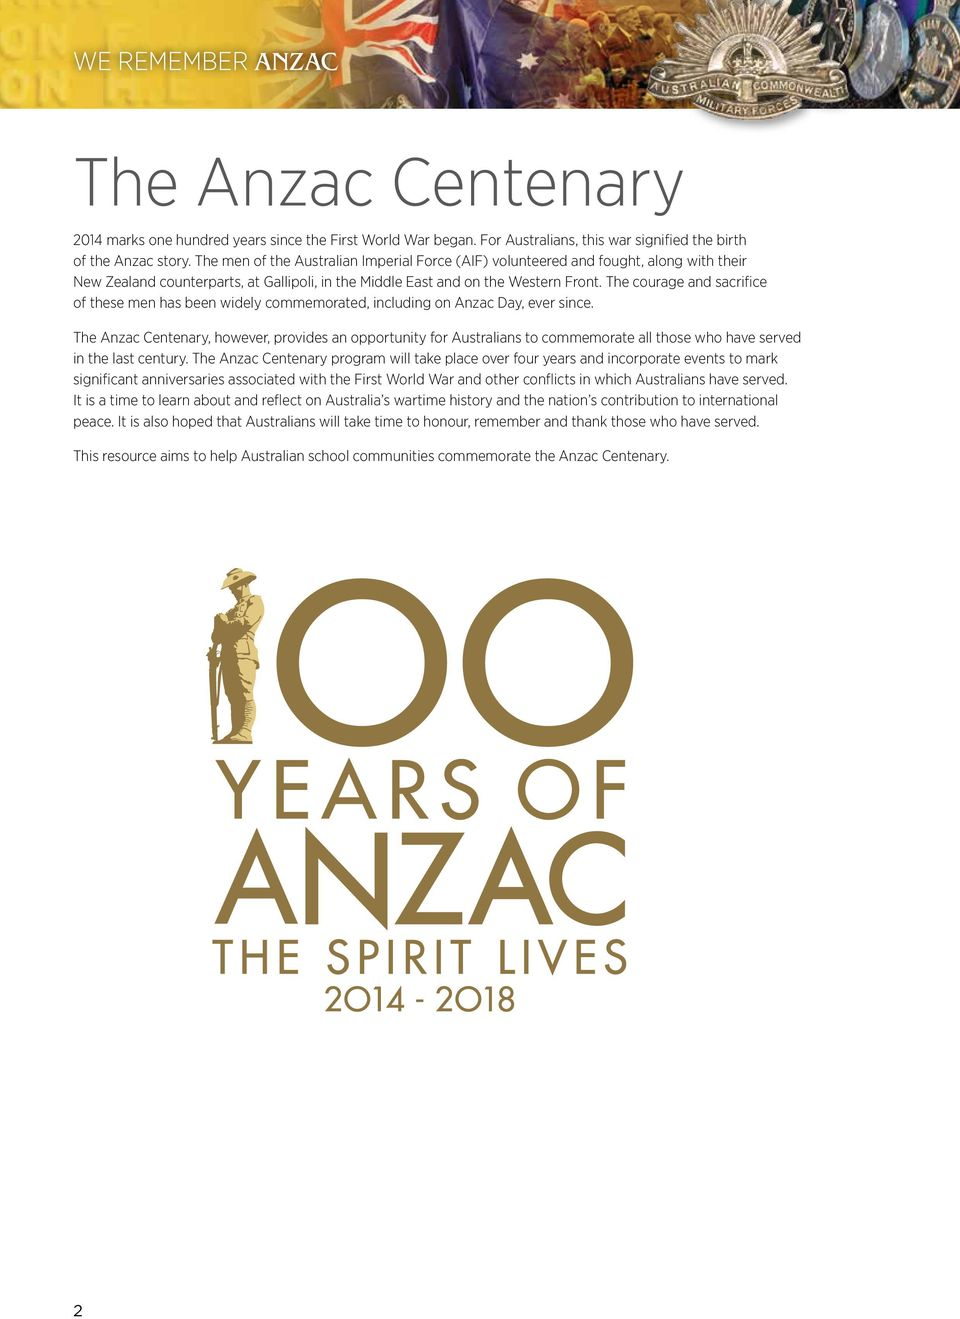 The courage and sacrifice of these men has been widely commemorated, including on Anzac Day, ever since.